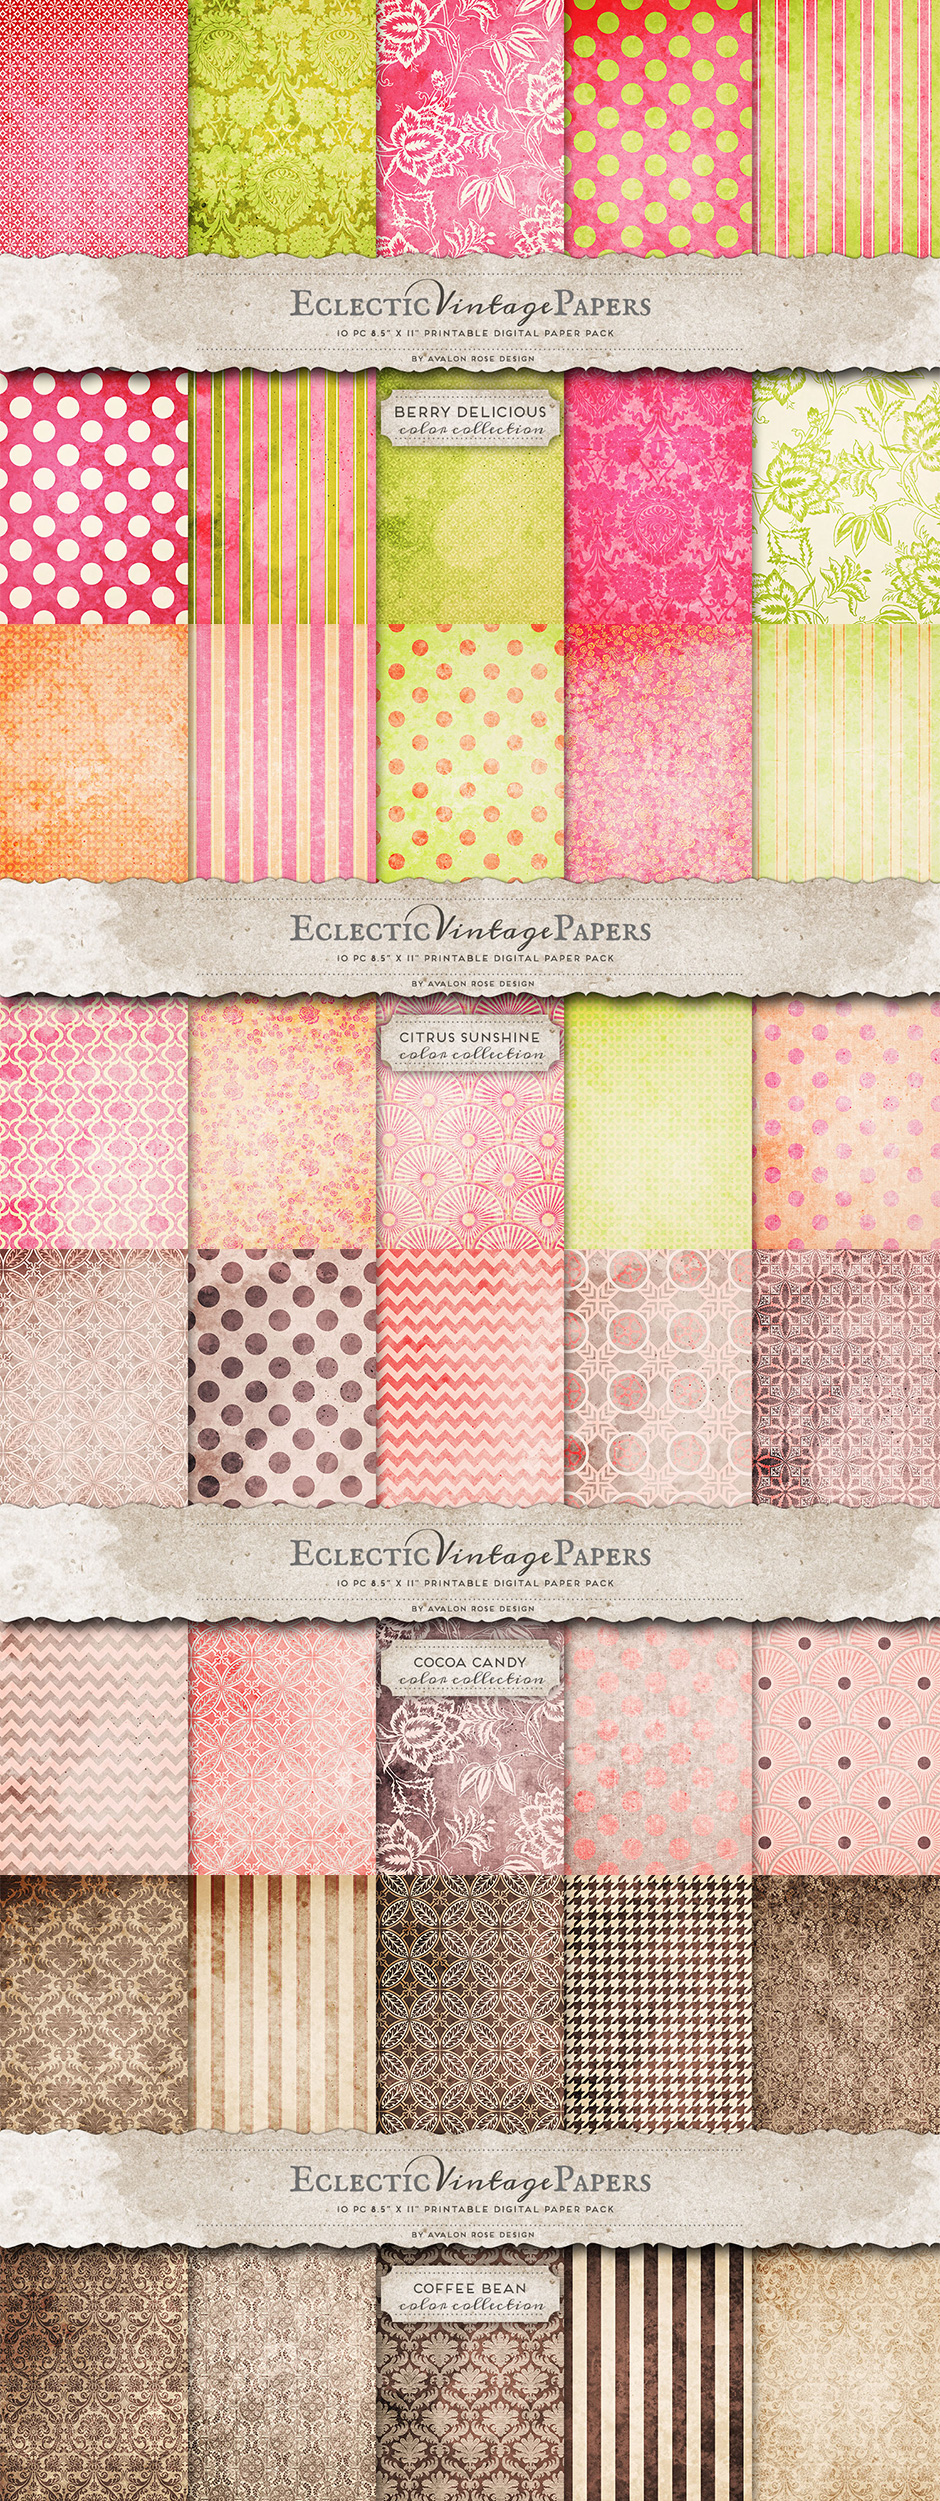 Vintage Paper Patterns Mega Pack